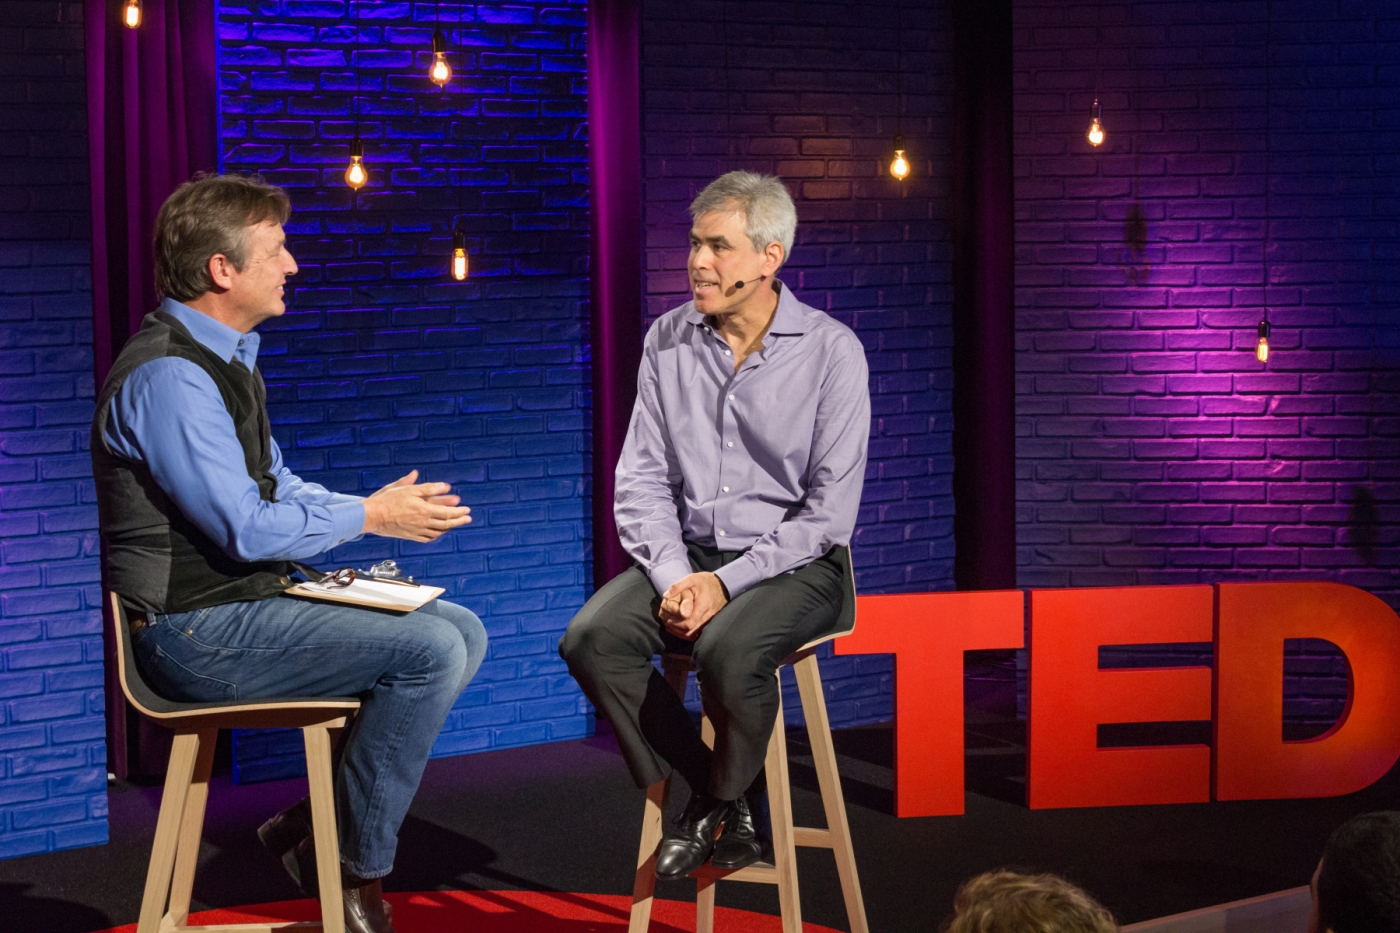 TED Curator Chris Anderson interviews Jonathan Haidt